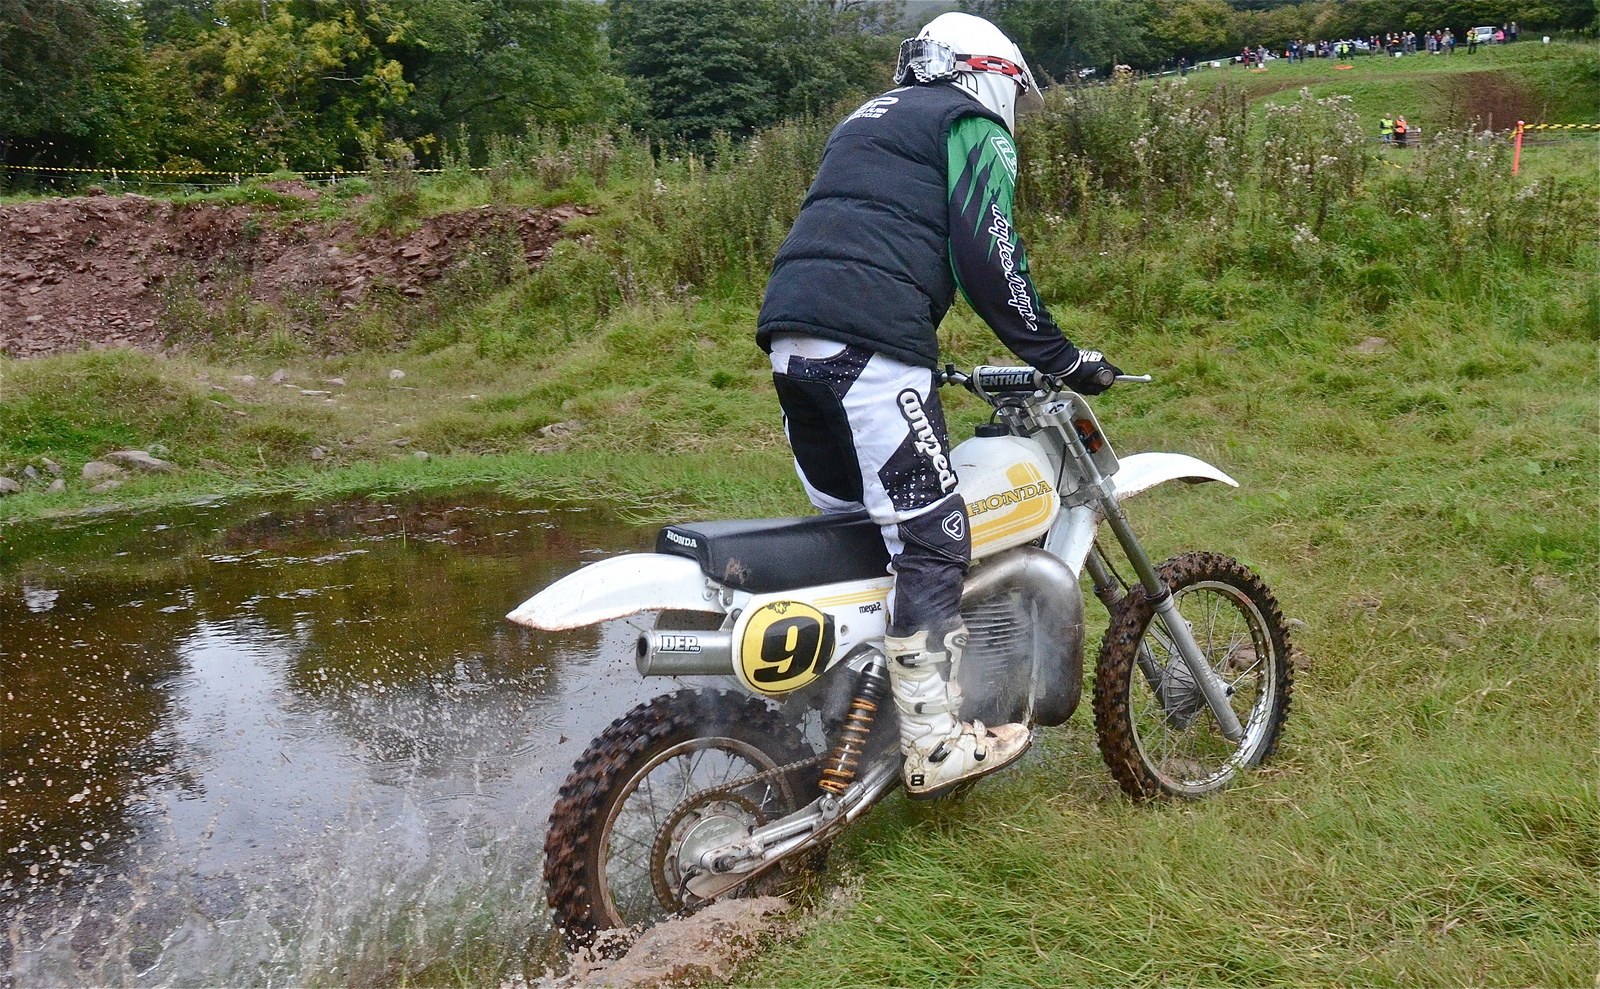 Llanthony Classic Scramble Photos September 2015 classicdirtbikerider.com..11